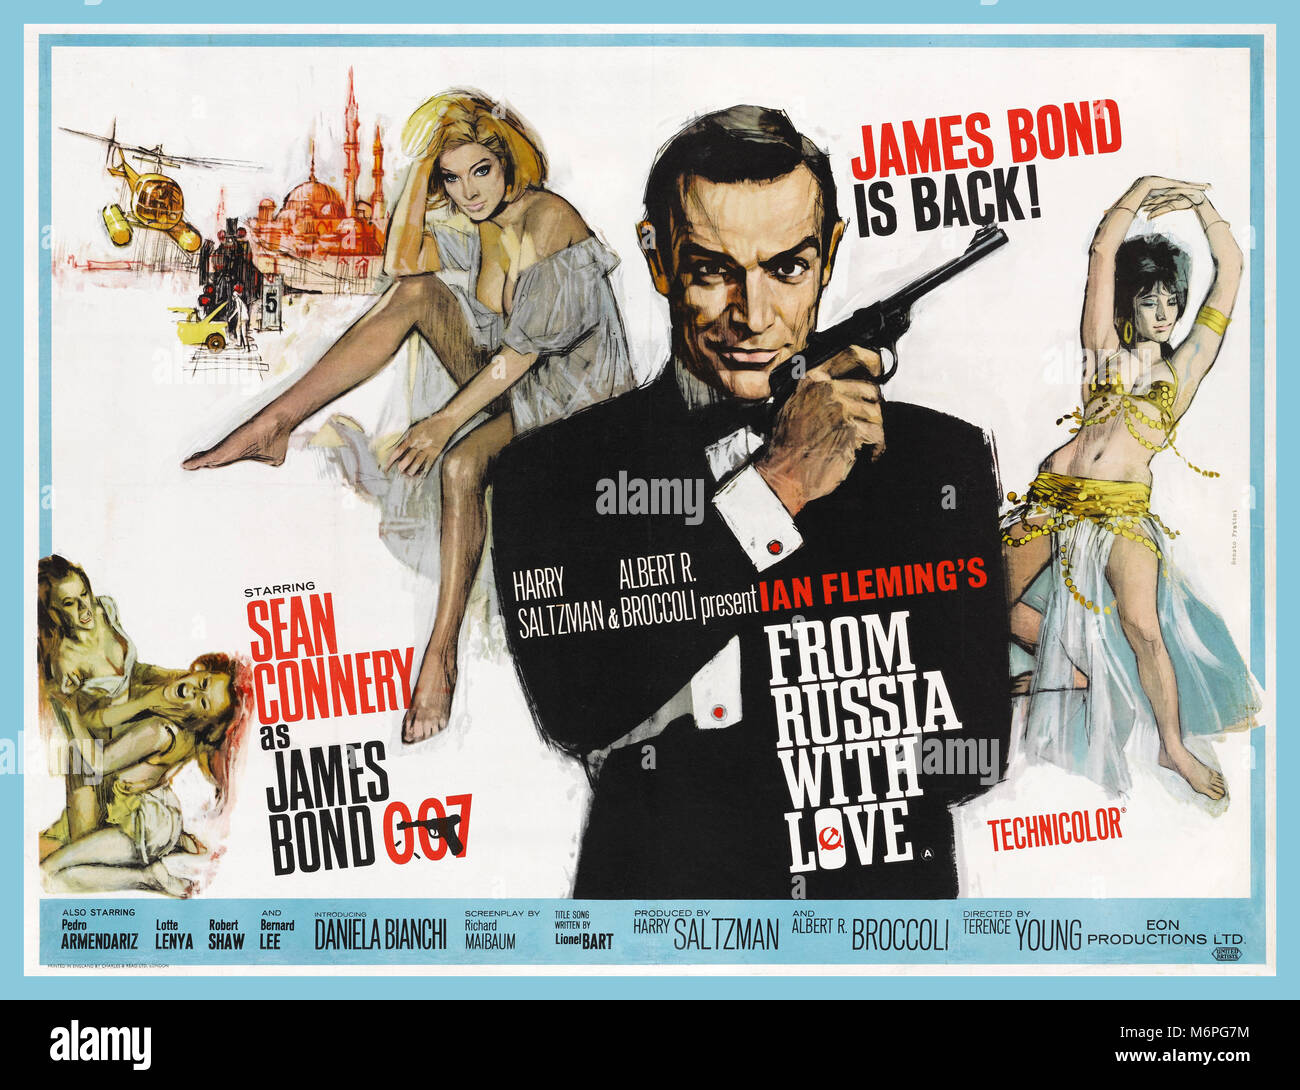 From Russia with Love a 1963 British UK James Bond spy film produced by Eon Productions, starring Sean Connery as - Stock Image